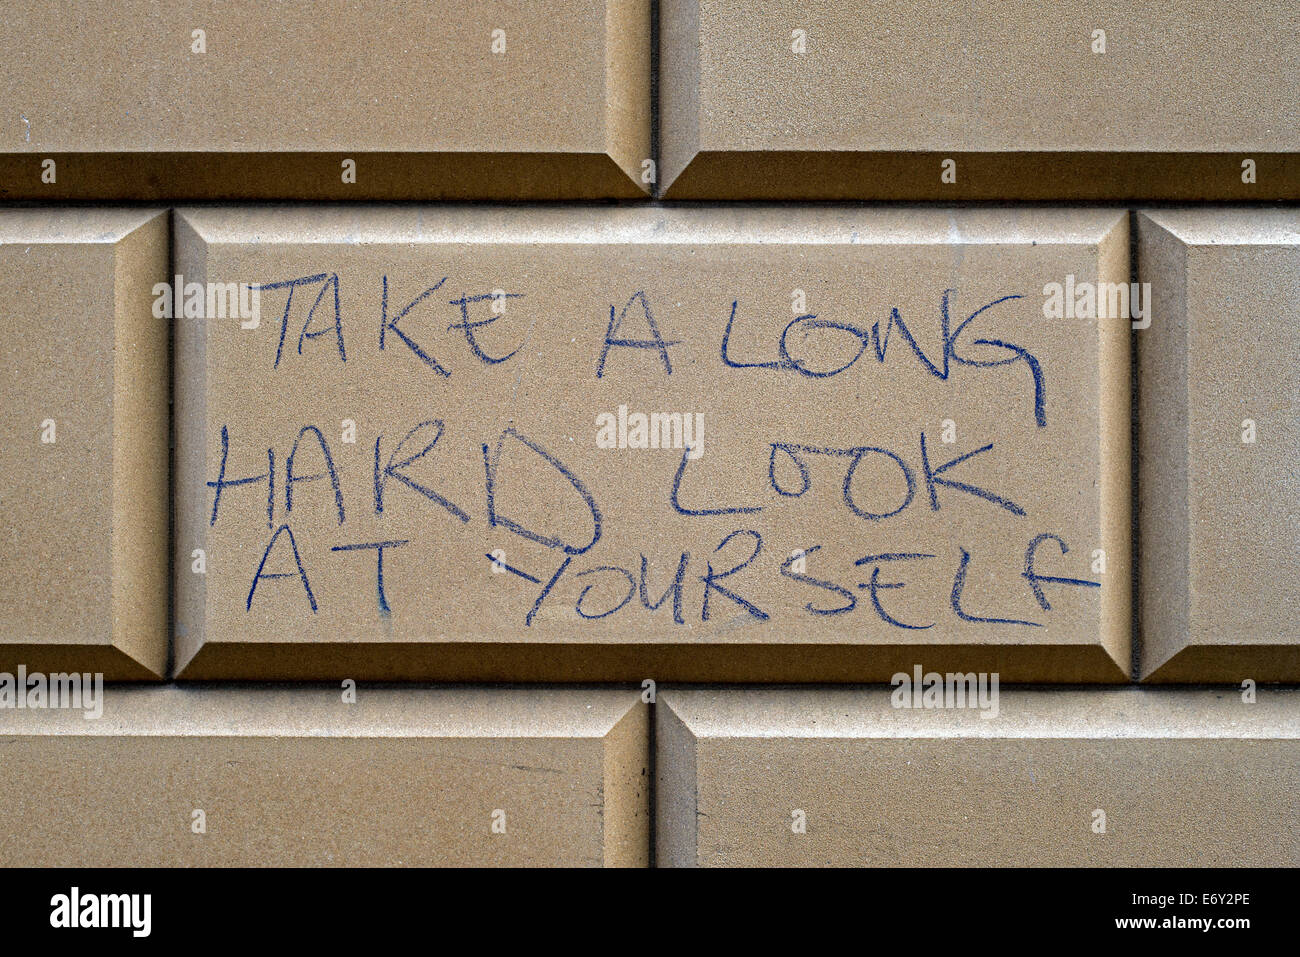 A useful piece of advice written on a sandstone building in Edinburgh, Scotland, UK. - Stock Image